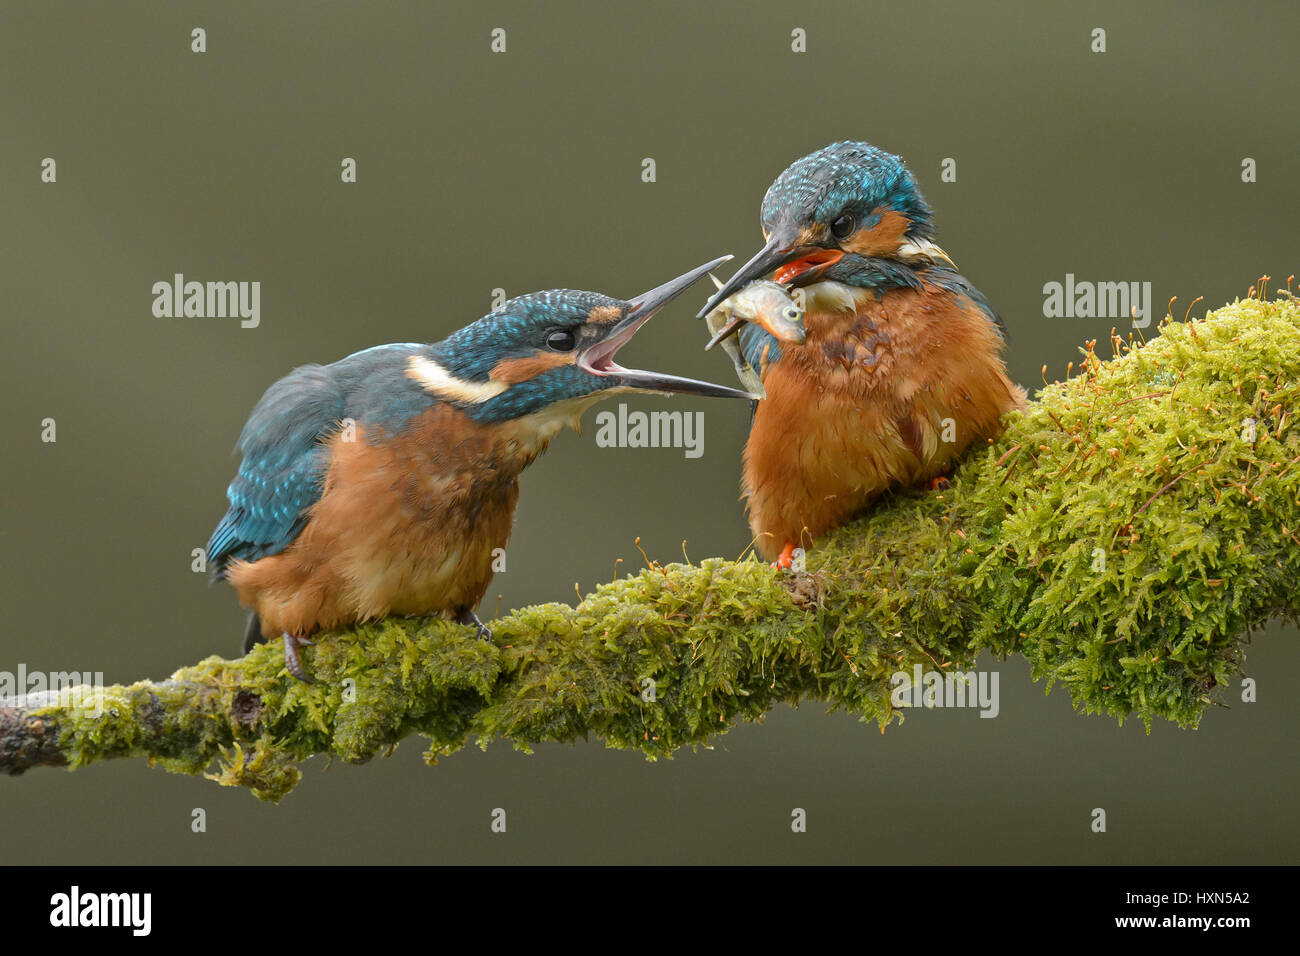 Common kingfisher (Alcedo atthis) adult male feeding minnow to recently fledged juvenile. Worcestershire, England. Stock Photo